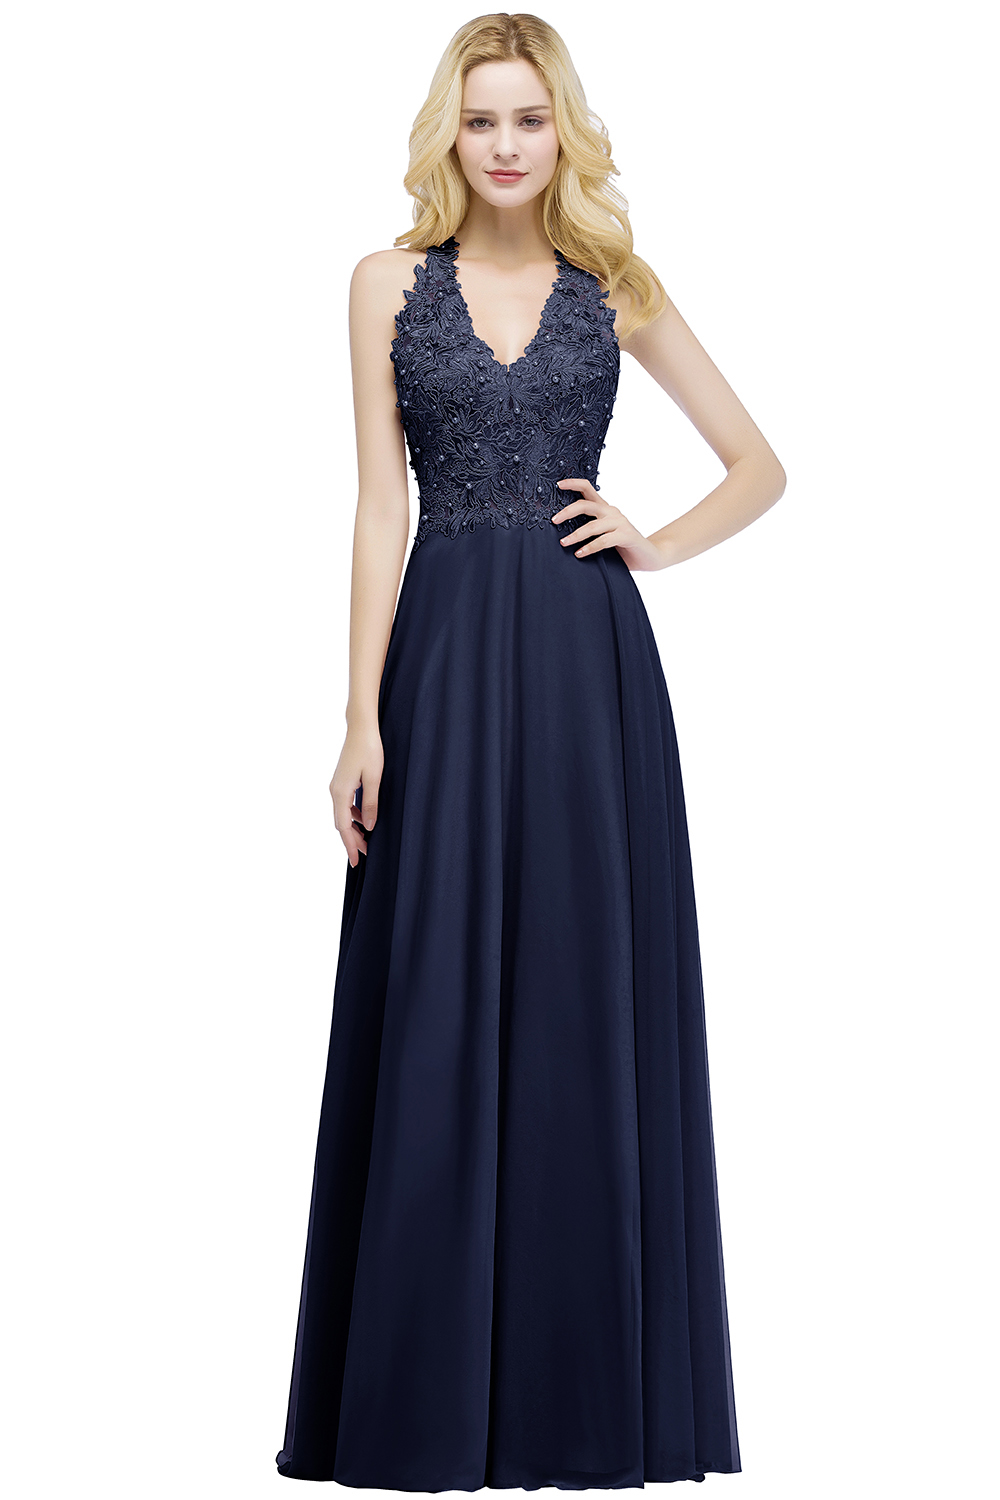 Elegant A Line Illusion Back with Pearls Floor Length Evening Dress 4